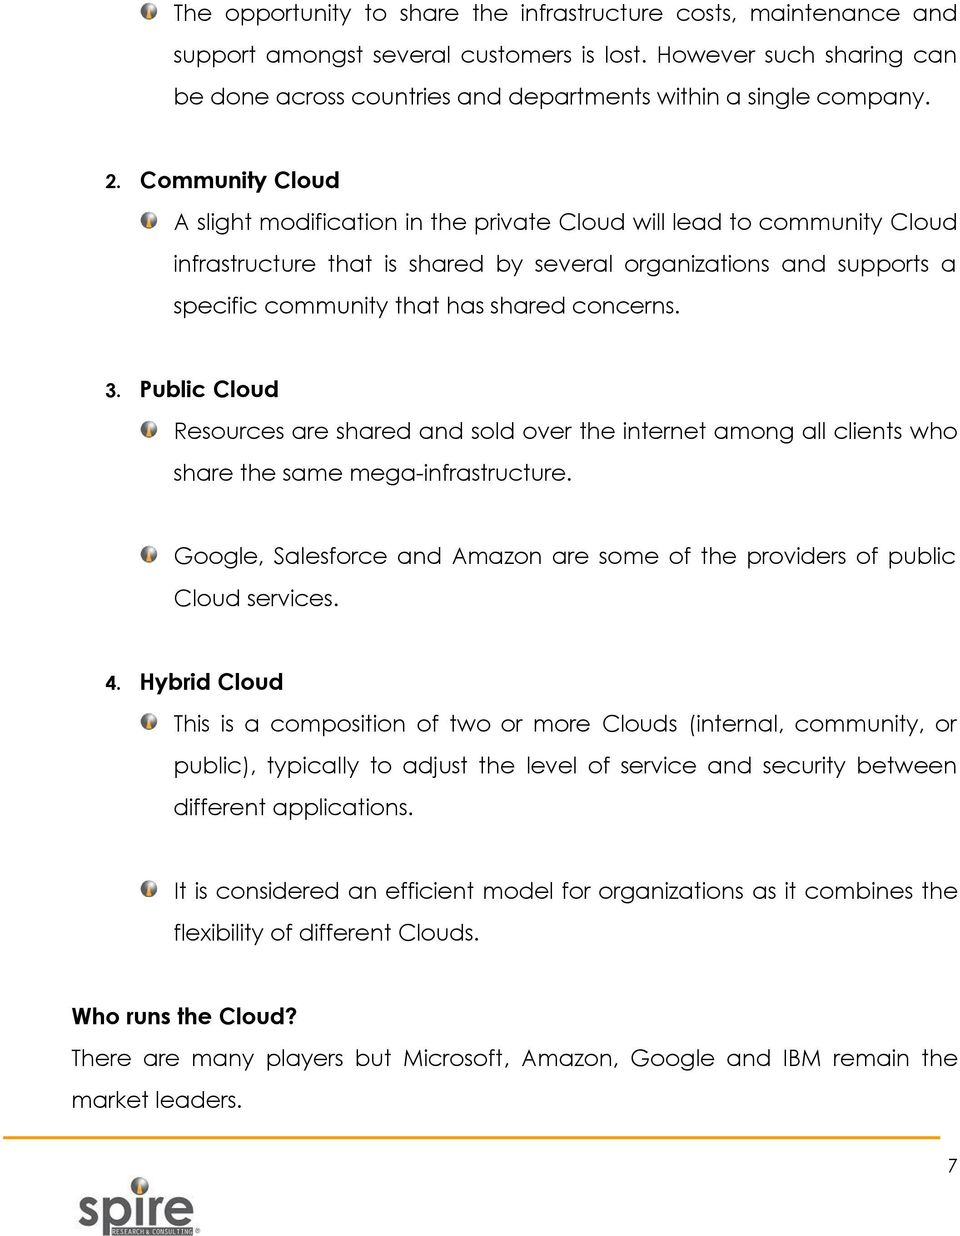 concerns. 3. Public Cloud Resources are shared and sold over the internet among all clients who share the same mega-infrastructure.